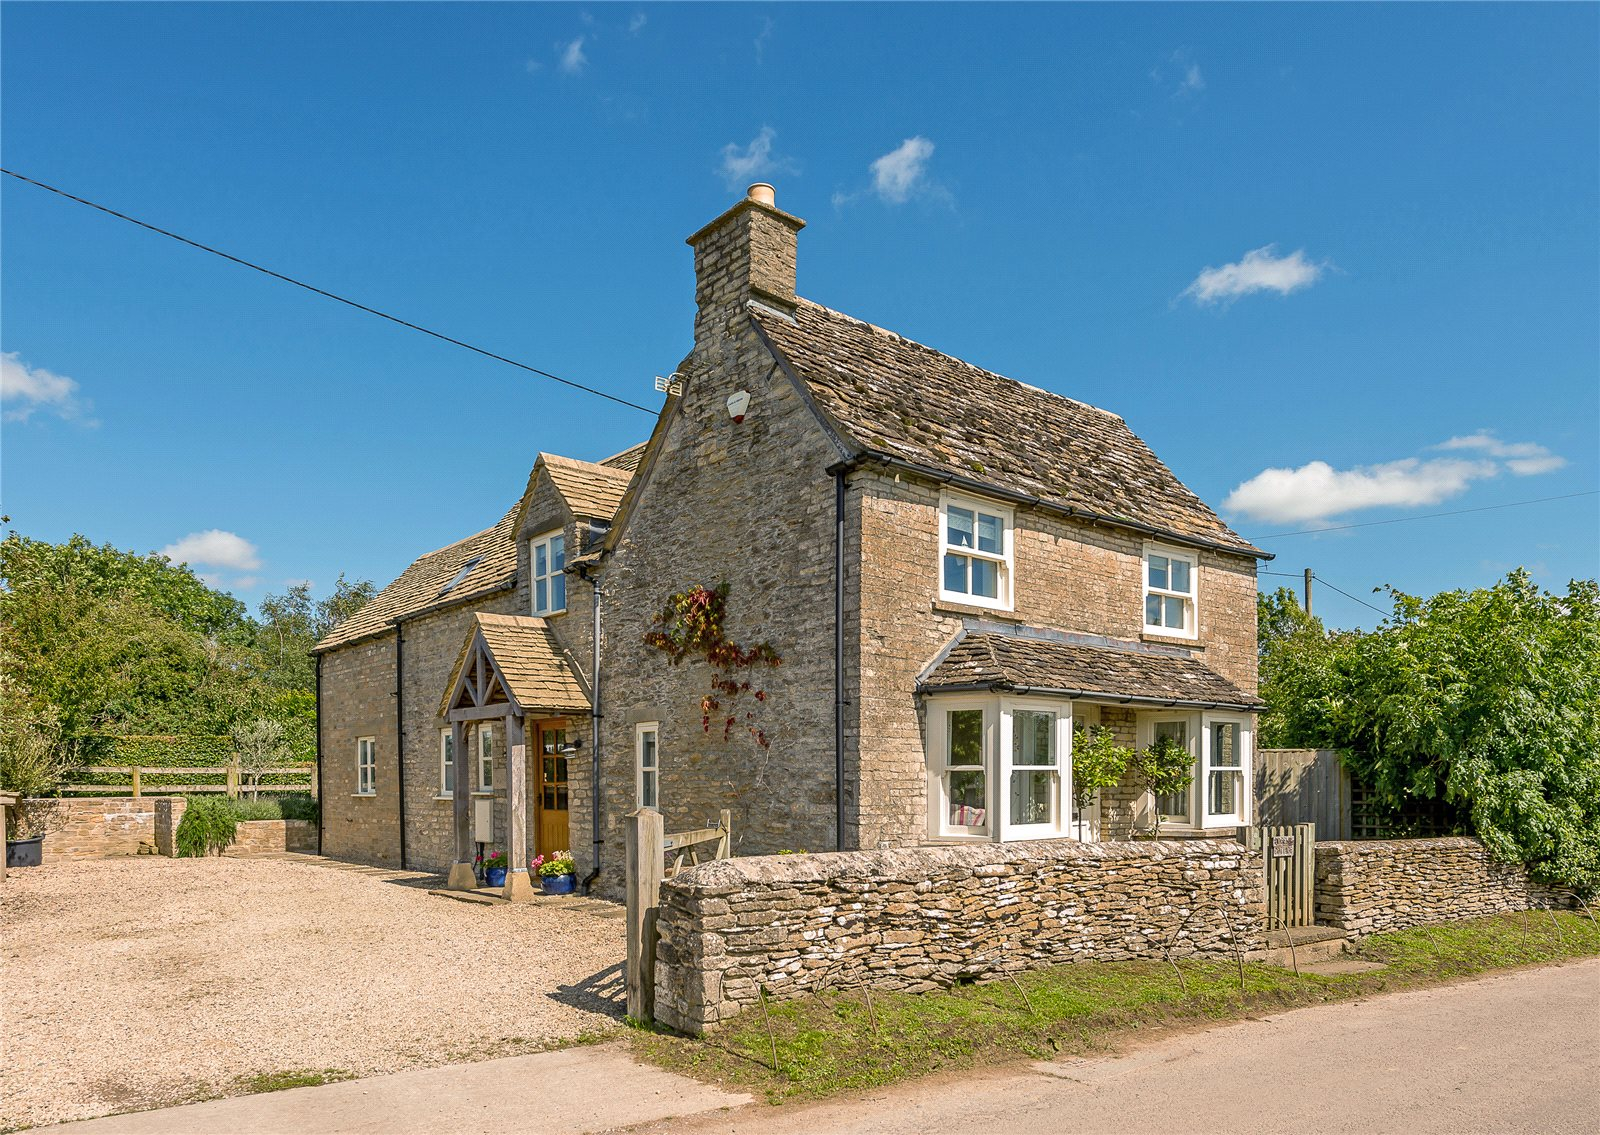 Additional photo for property listing at Tetbury Lane, Crudwell, Malmesbury, Wiltshire, SN16 Malmesbury, England